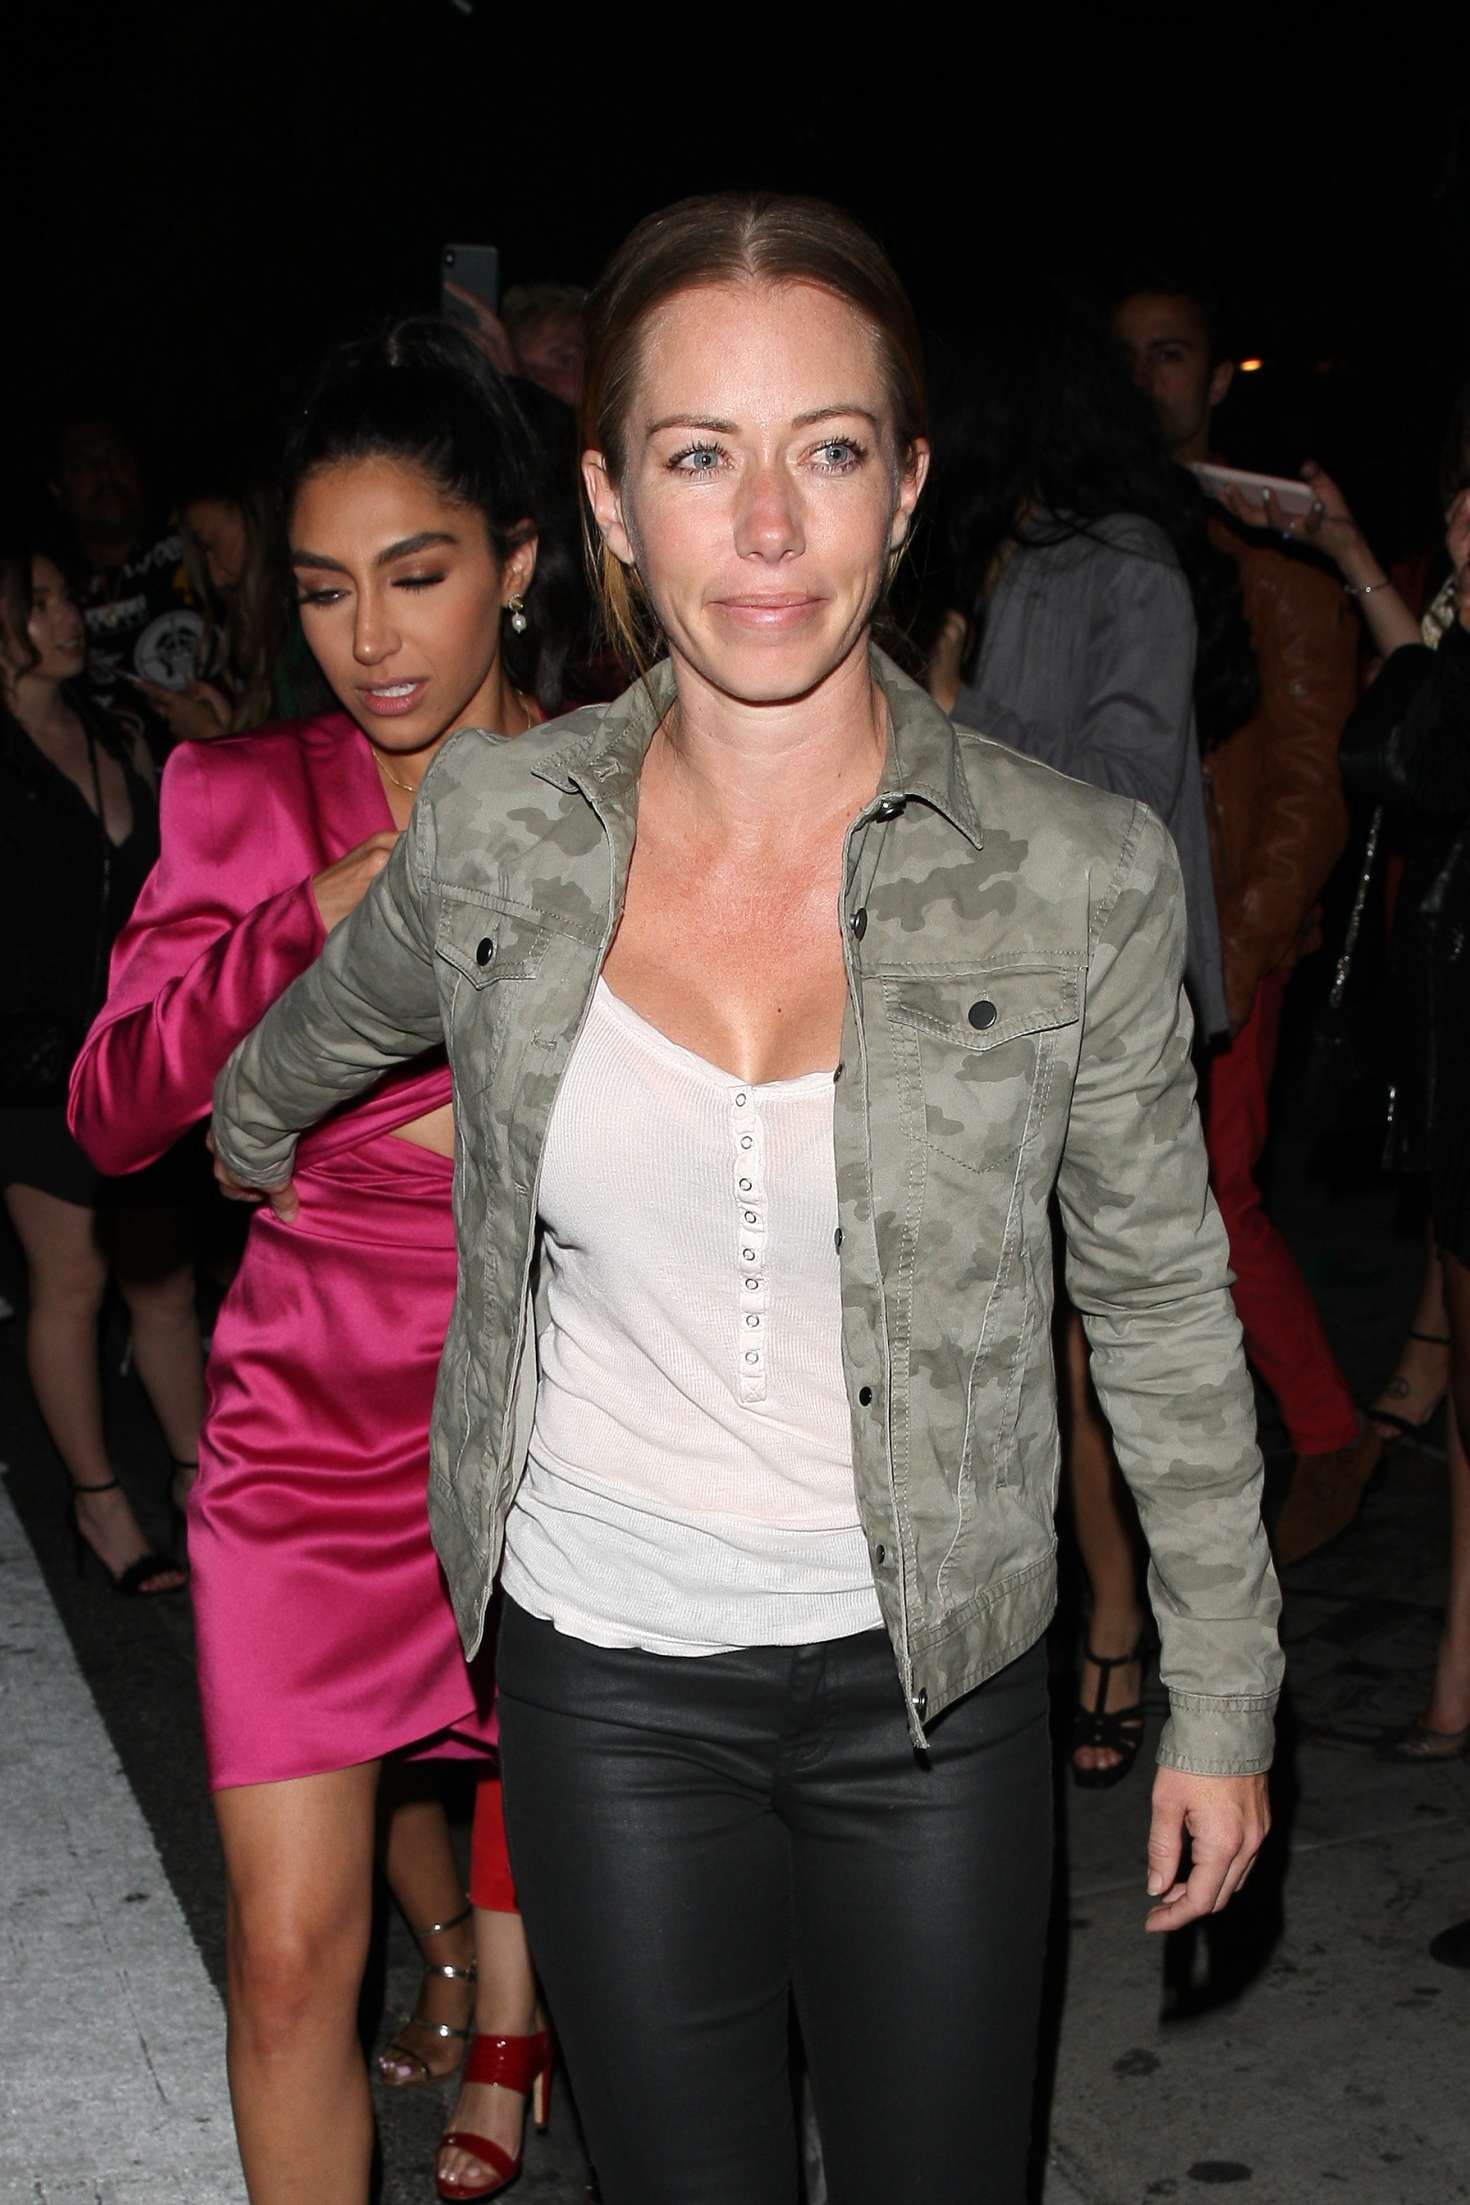 Kendra Wilkinson at Poppy Club in West Hollywood